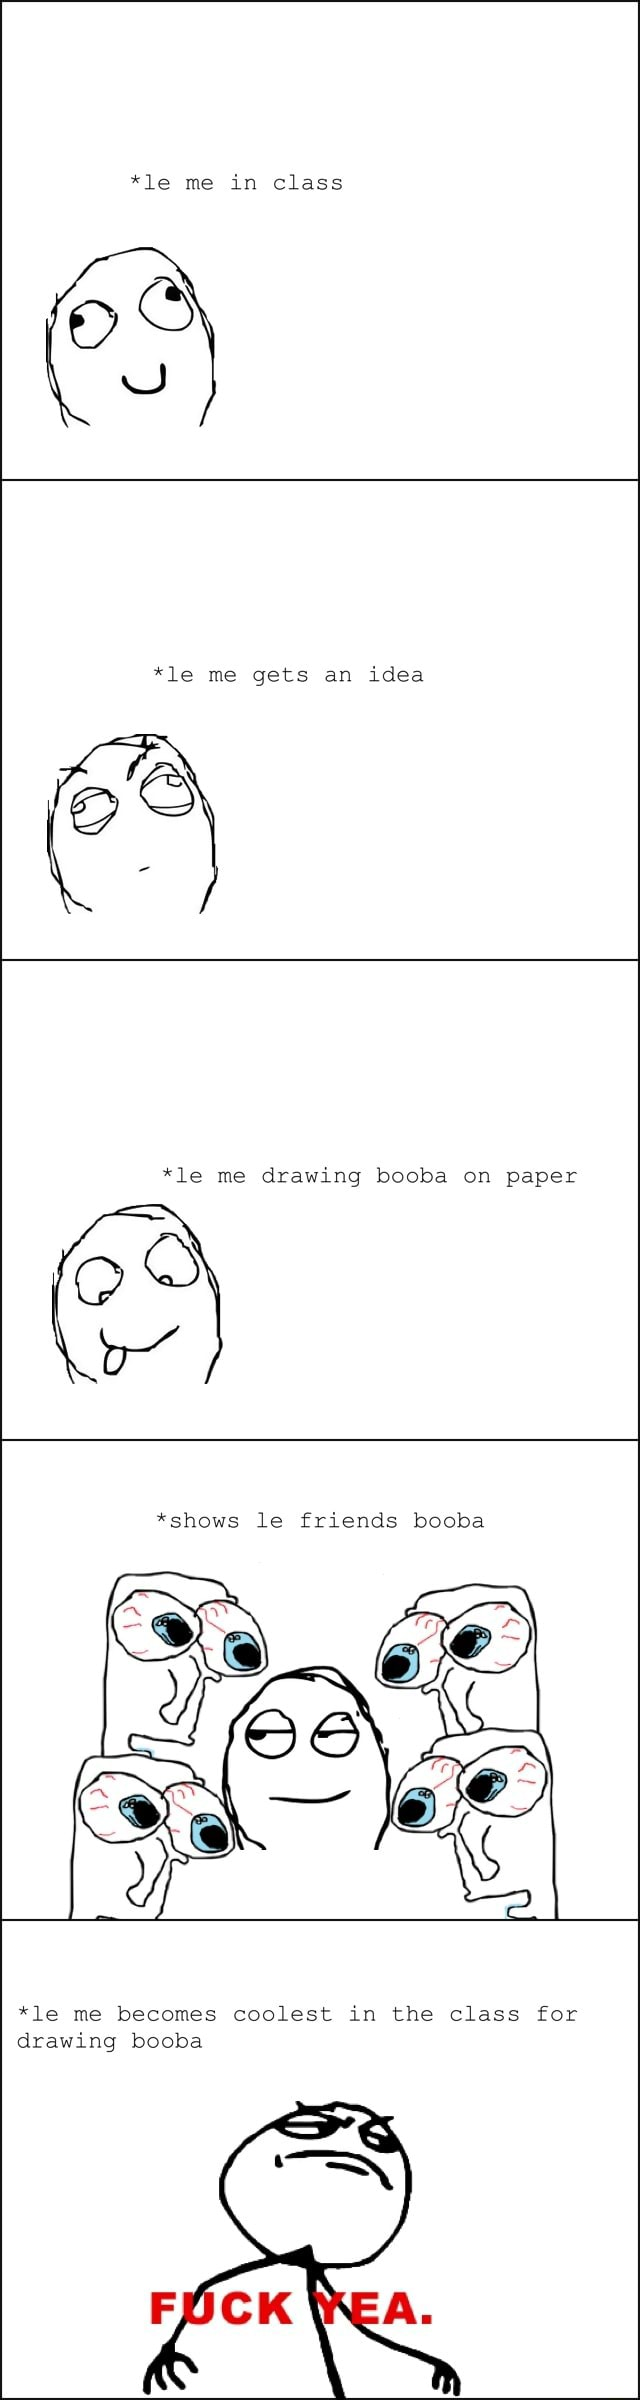 *le me in class *le me gets an idea aS *le me drawing booba on paper *shows le friends booba *le me becomes coolest in the class for drawing booba meme